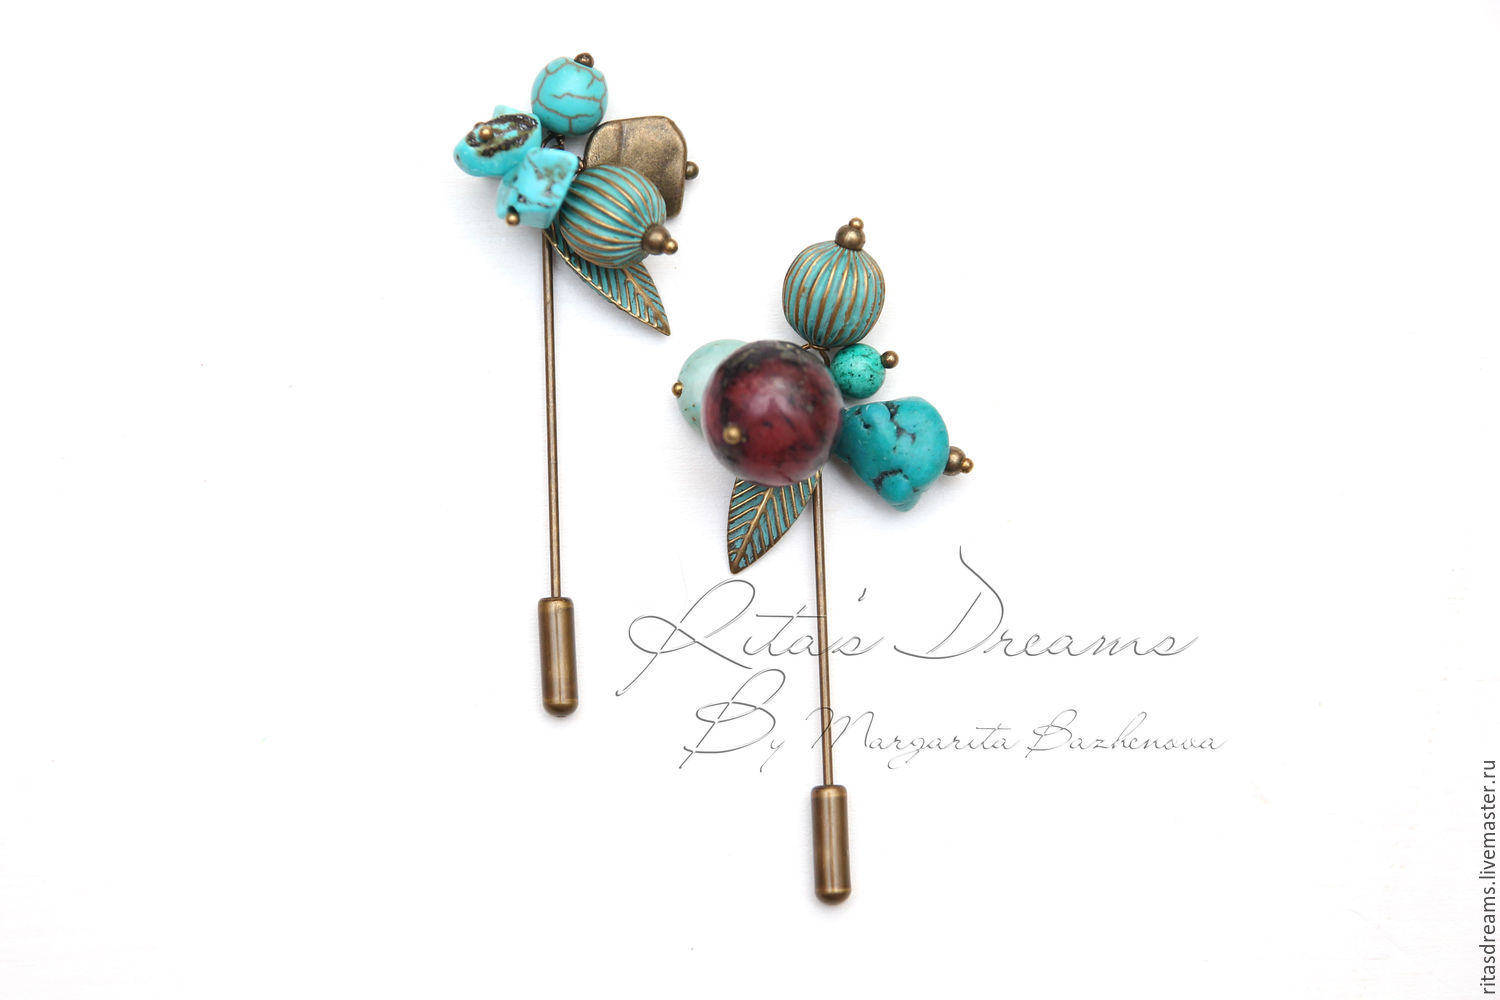 Small brooch-pin in turquoise and berry-turquoise tones - the perfect complement to the scarf, snub, stole, coat, knitted cardigan sweater or any other knitted things.